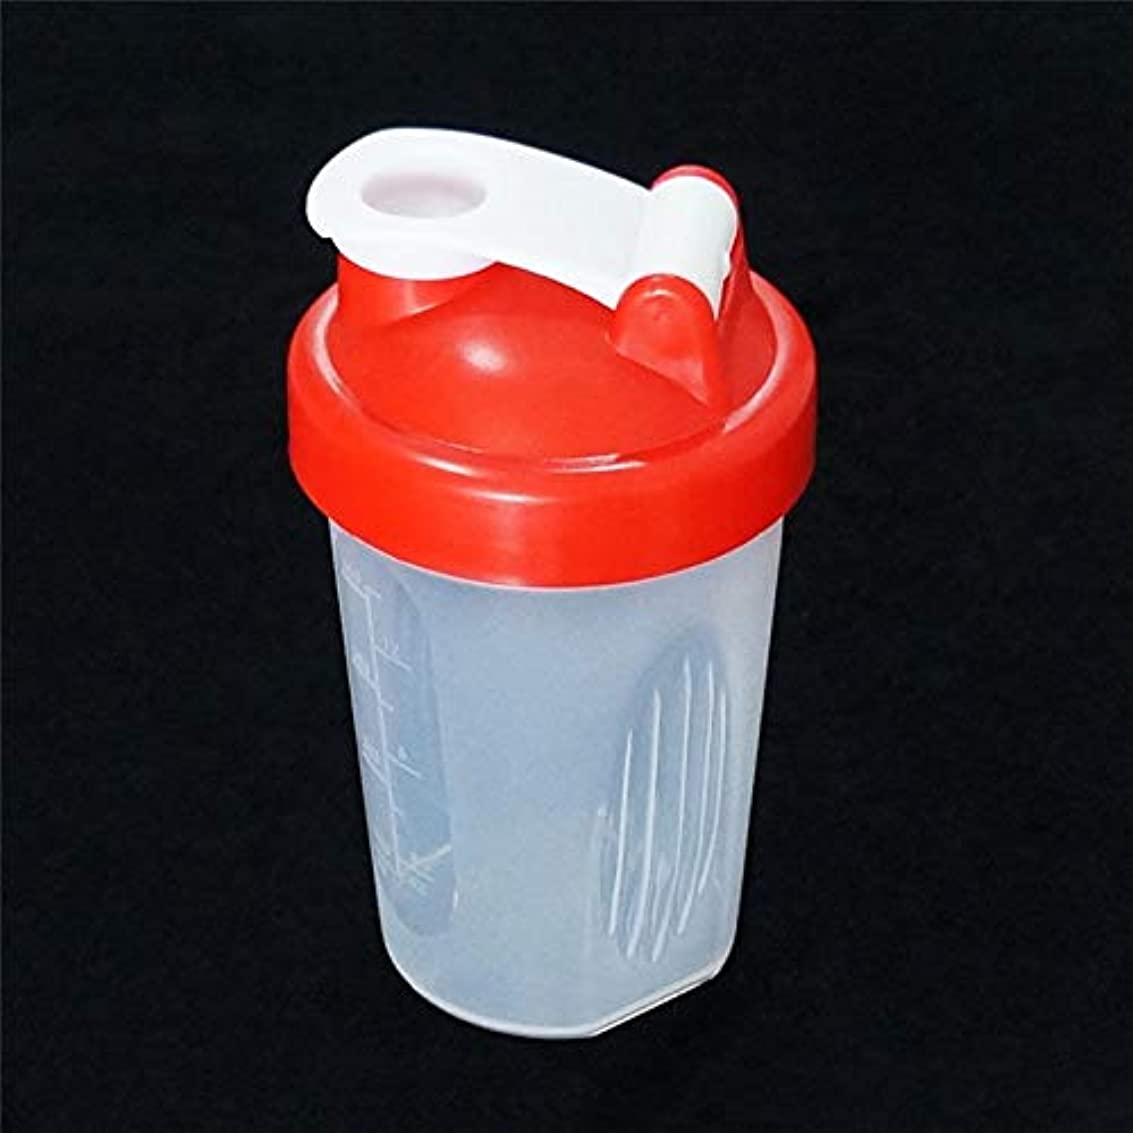 Maxcrestas - 400ML Plastic Shake Cups Drink Creative Large Capacity Free Shake Blender Shaker Mixer Cups Drink Whisk Ball Bottle New Arrivals